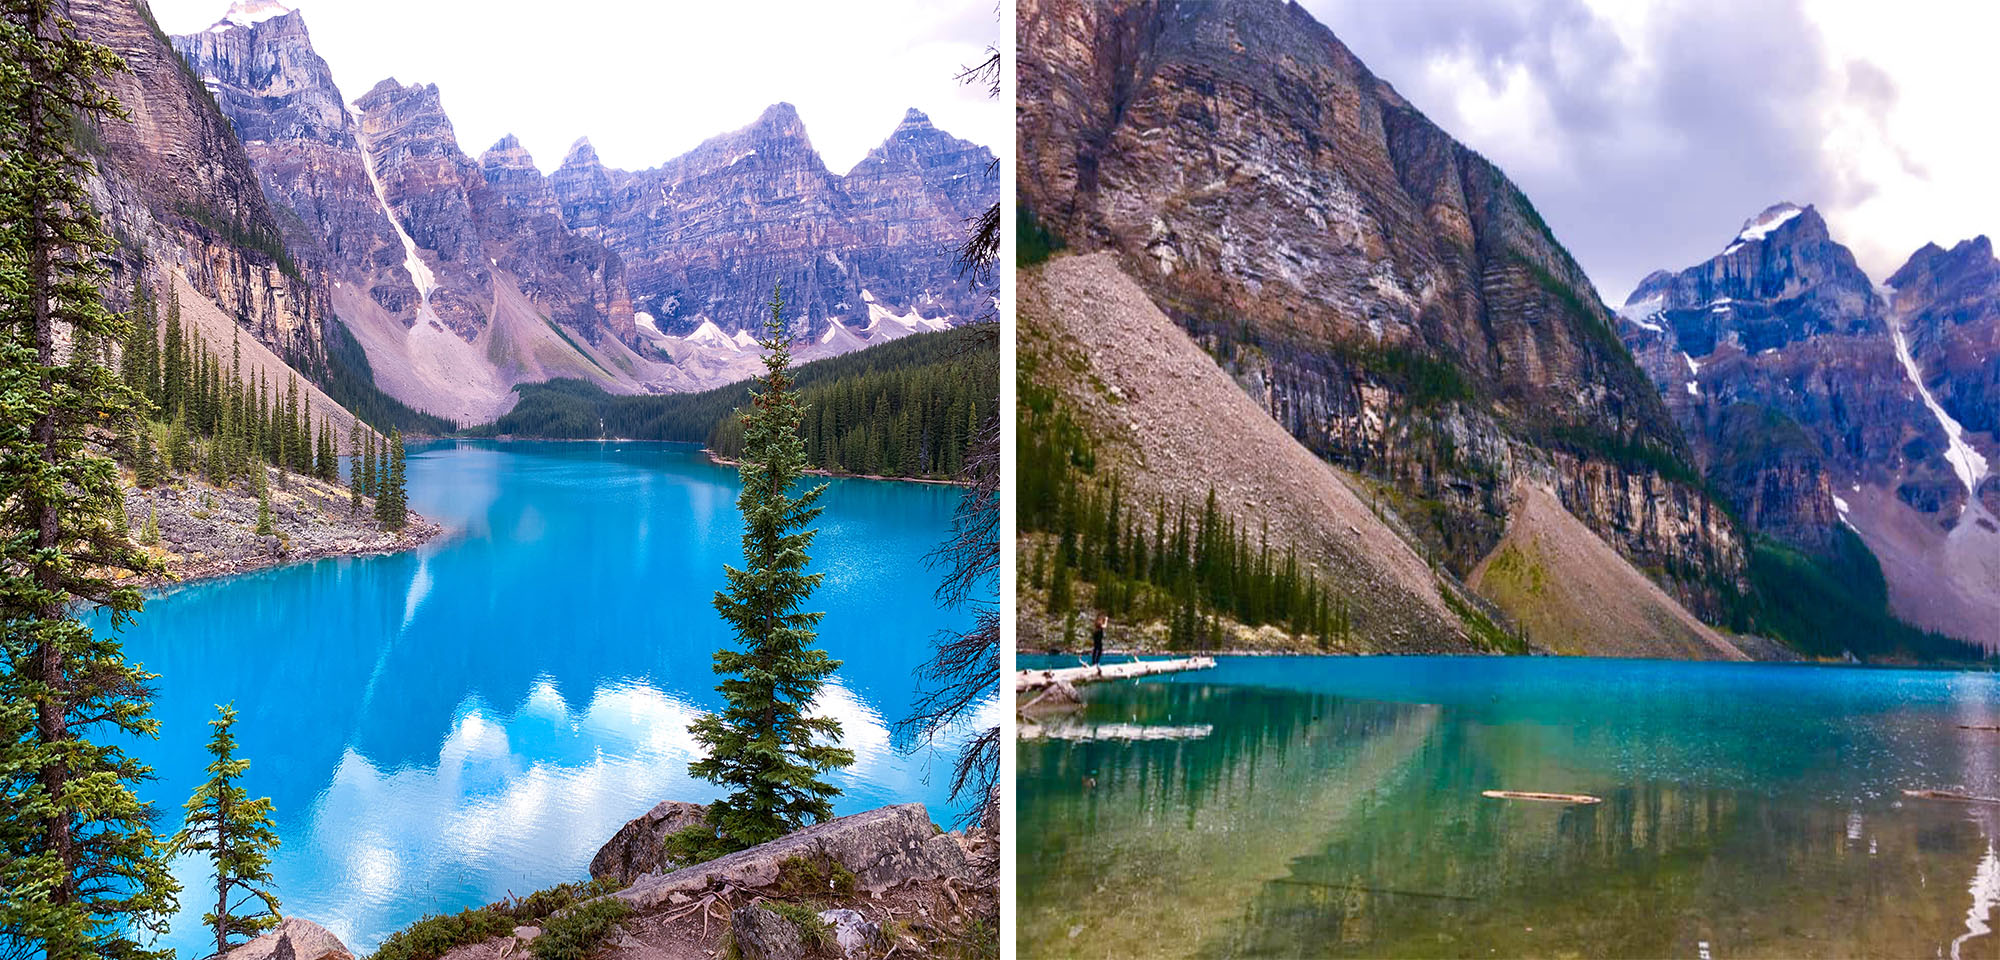 How to go to Moraine Lake